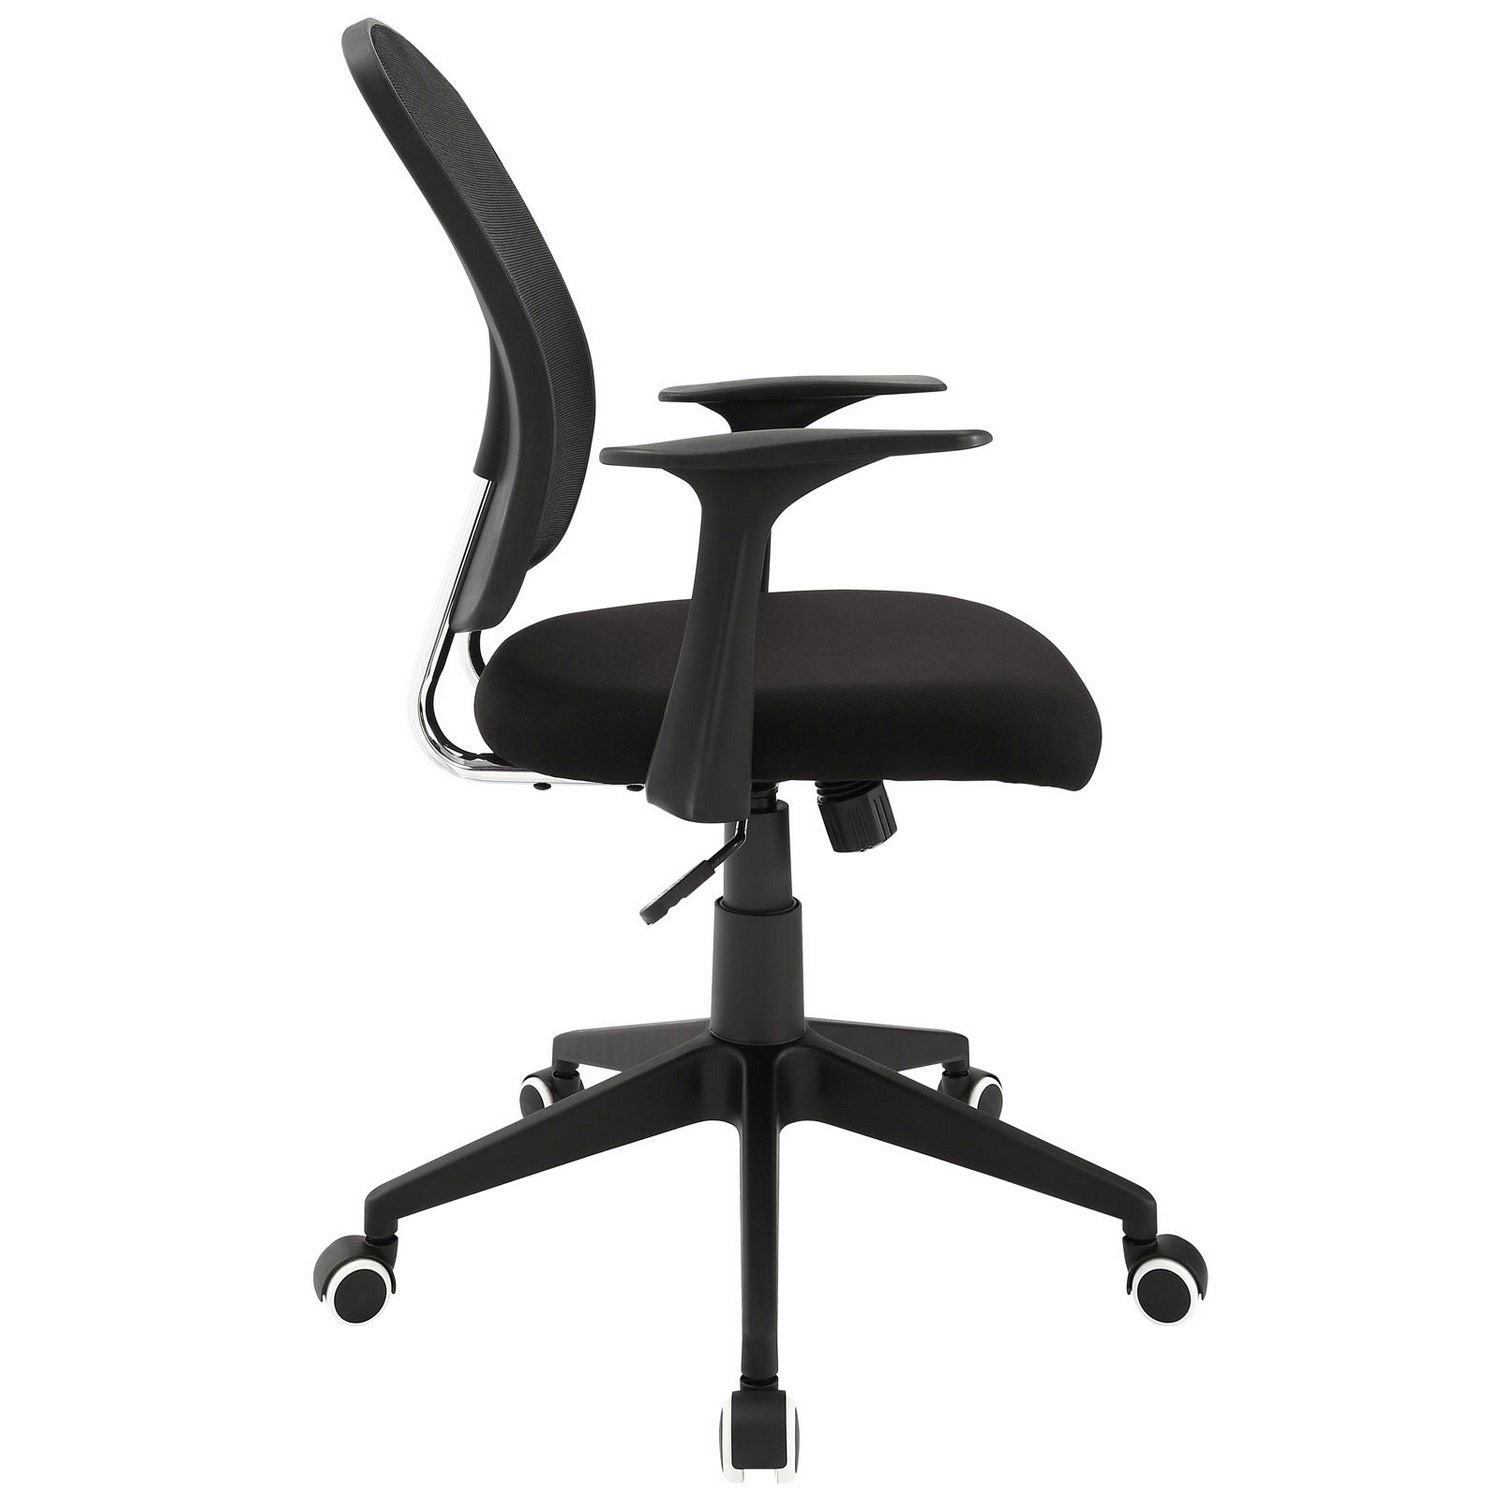 Modway Poise Office Chair - Black